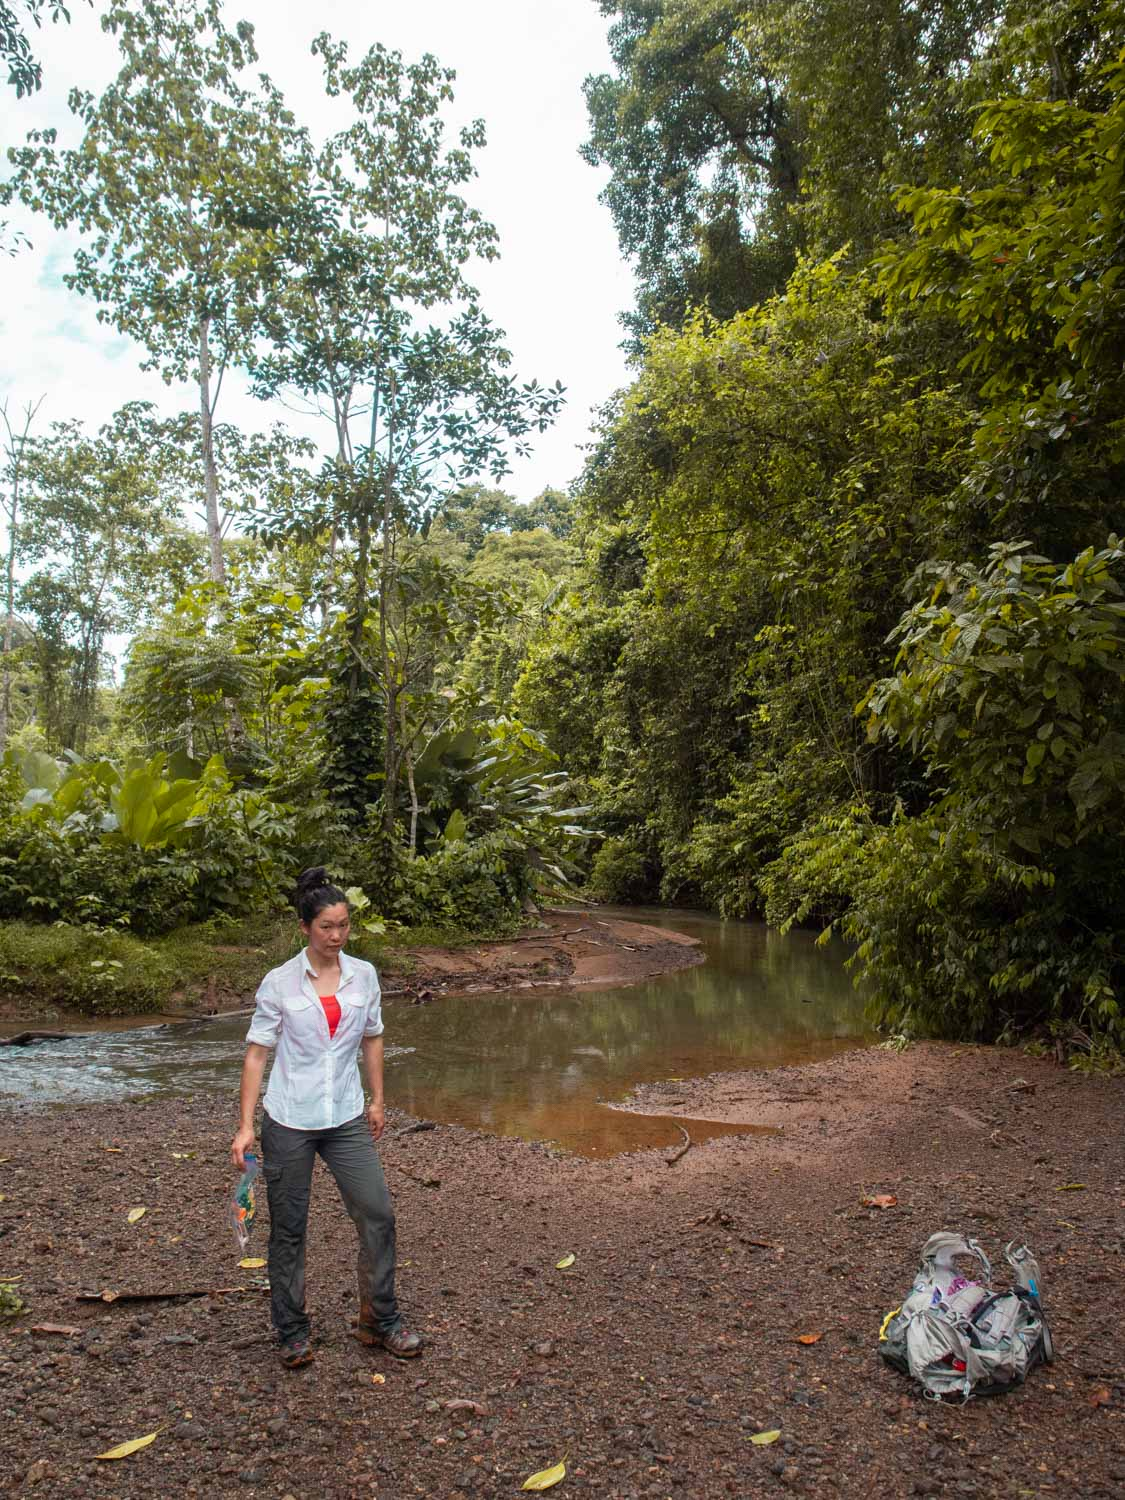 osa wild's three day jungle trek included a lunch